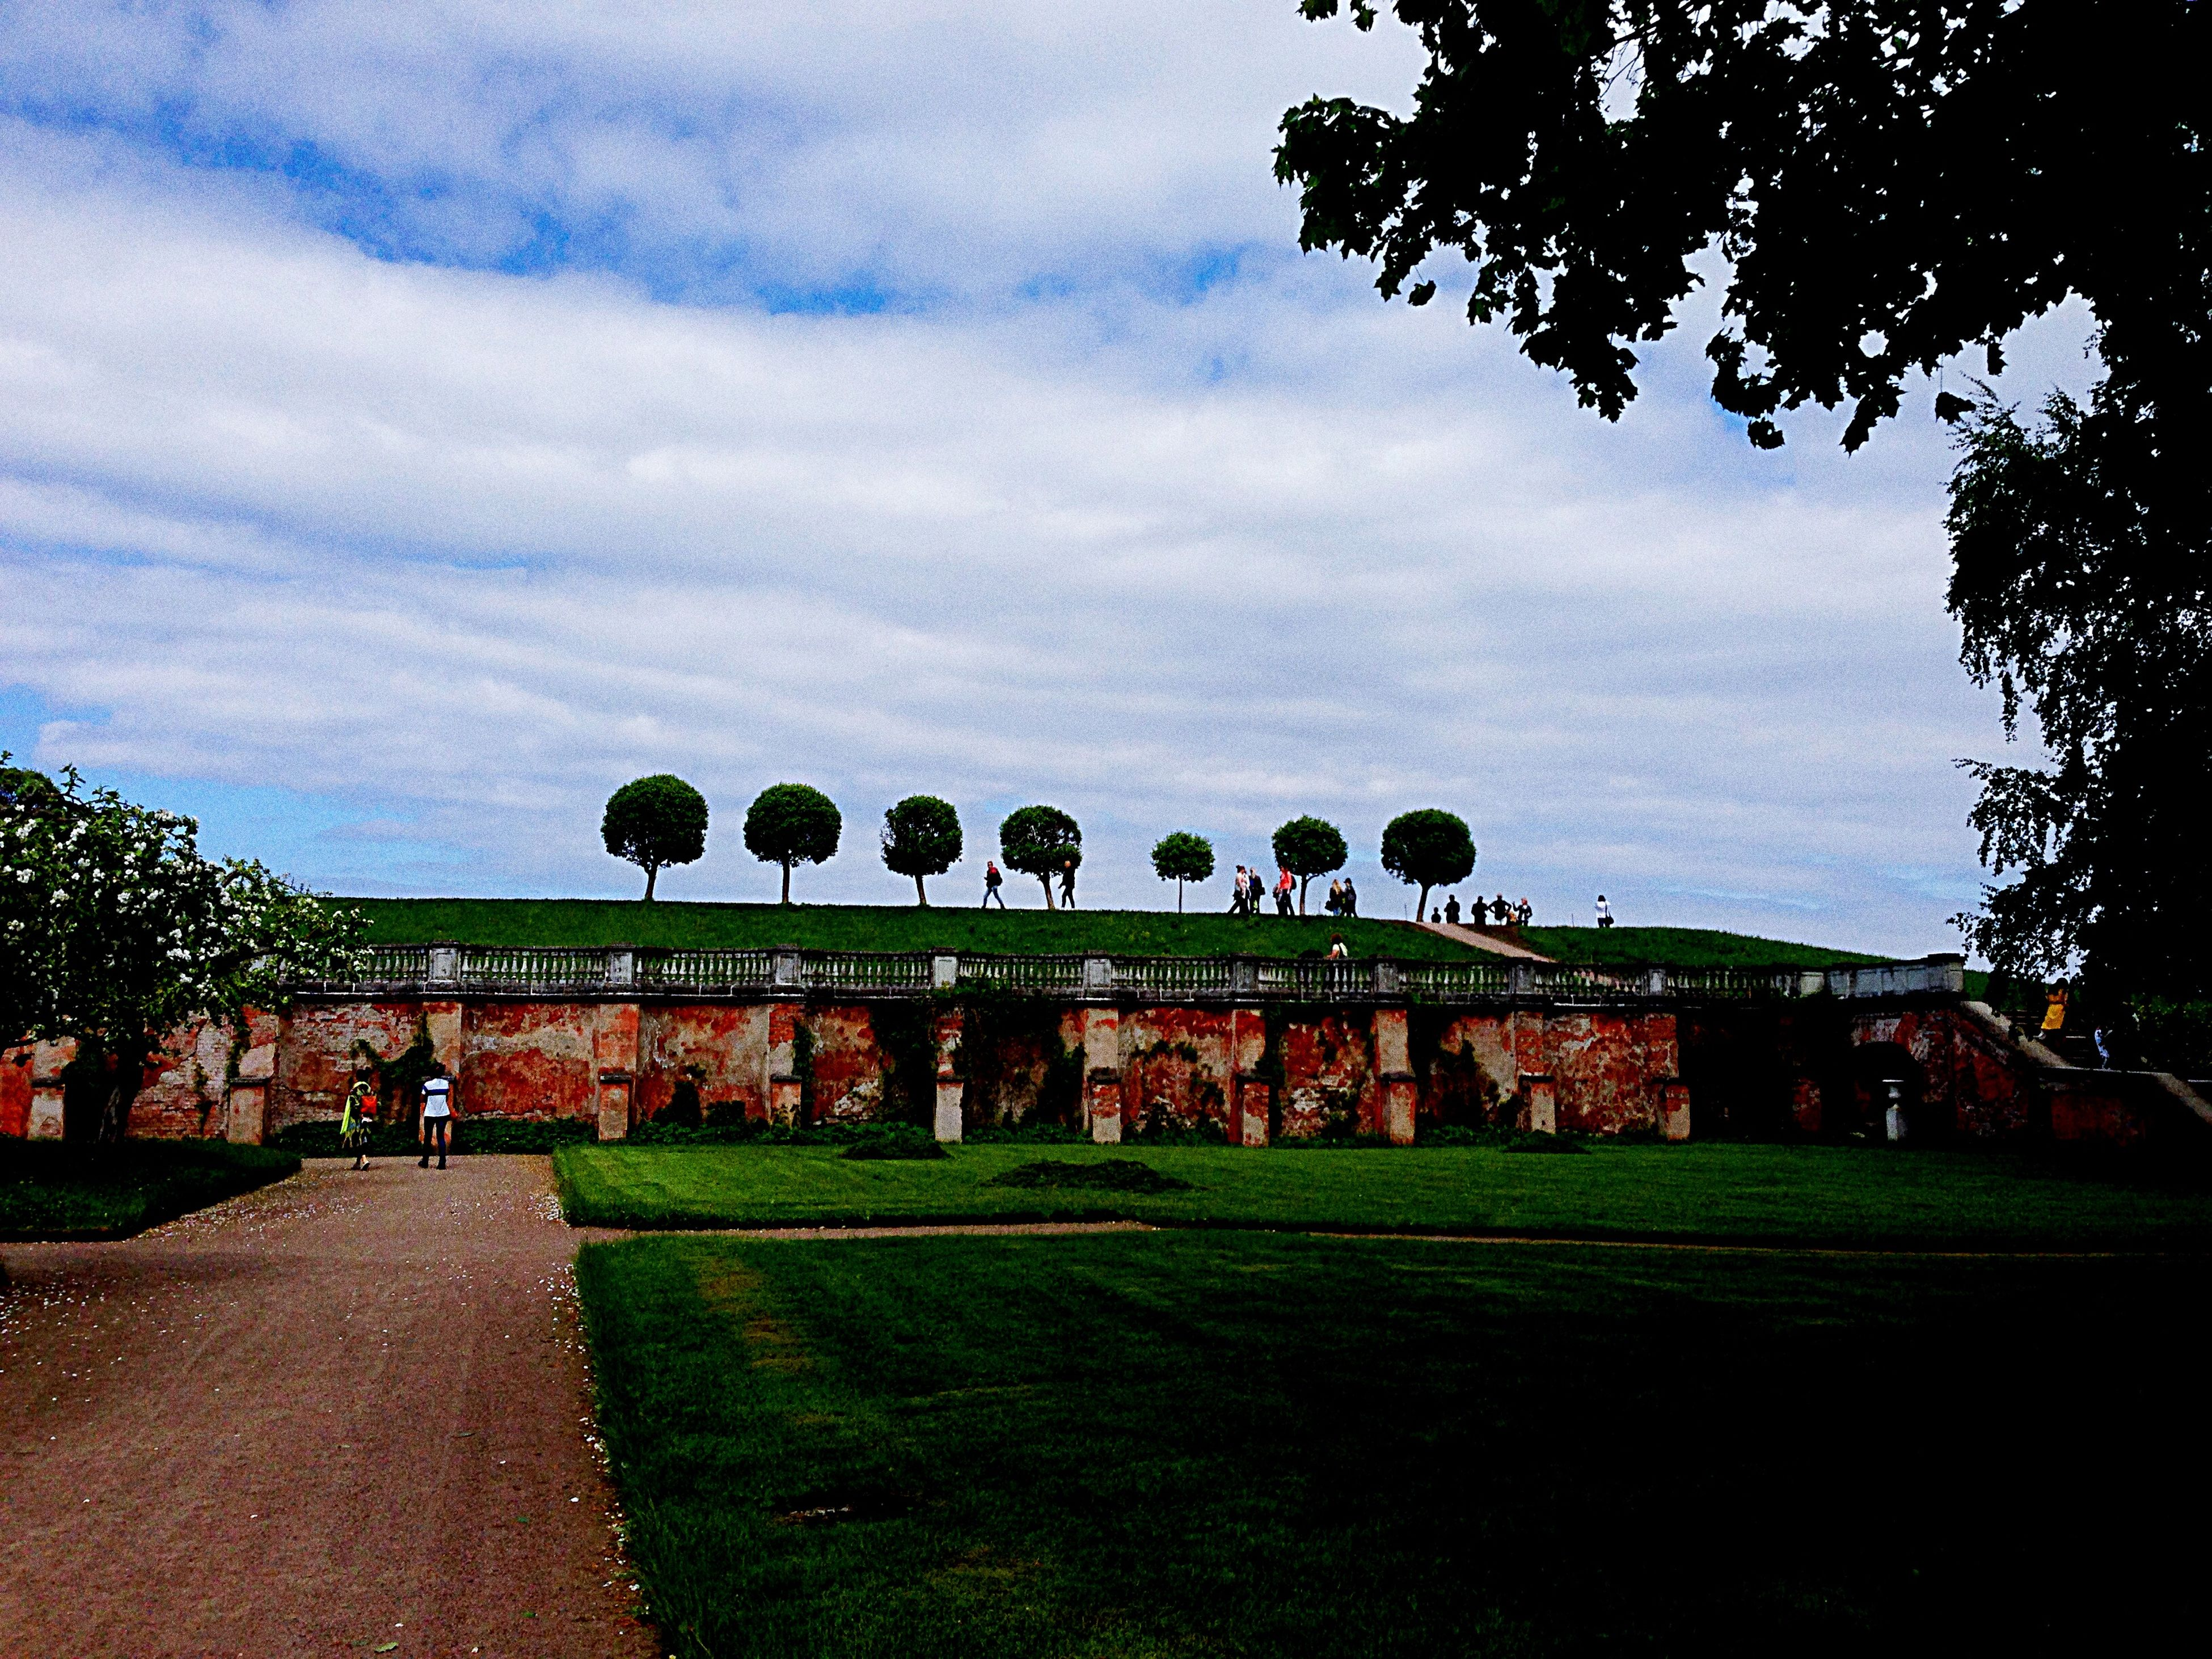 sky, grass, tree, architecture, built structure, cloud - sky, building exterior, cloudy, green color, famous place, lawn, history, travel destinations, cloud, tourism, travel, park - man made space, outdoors, day, the past